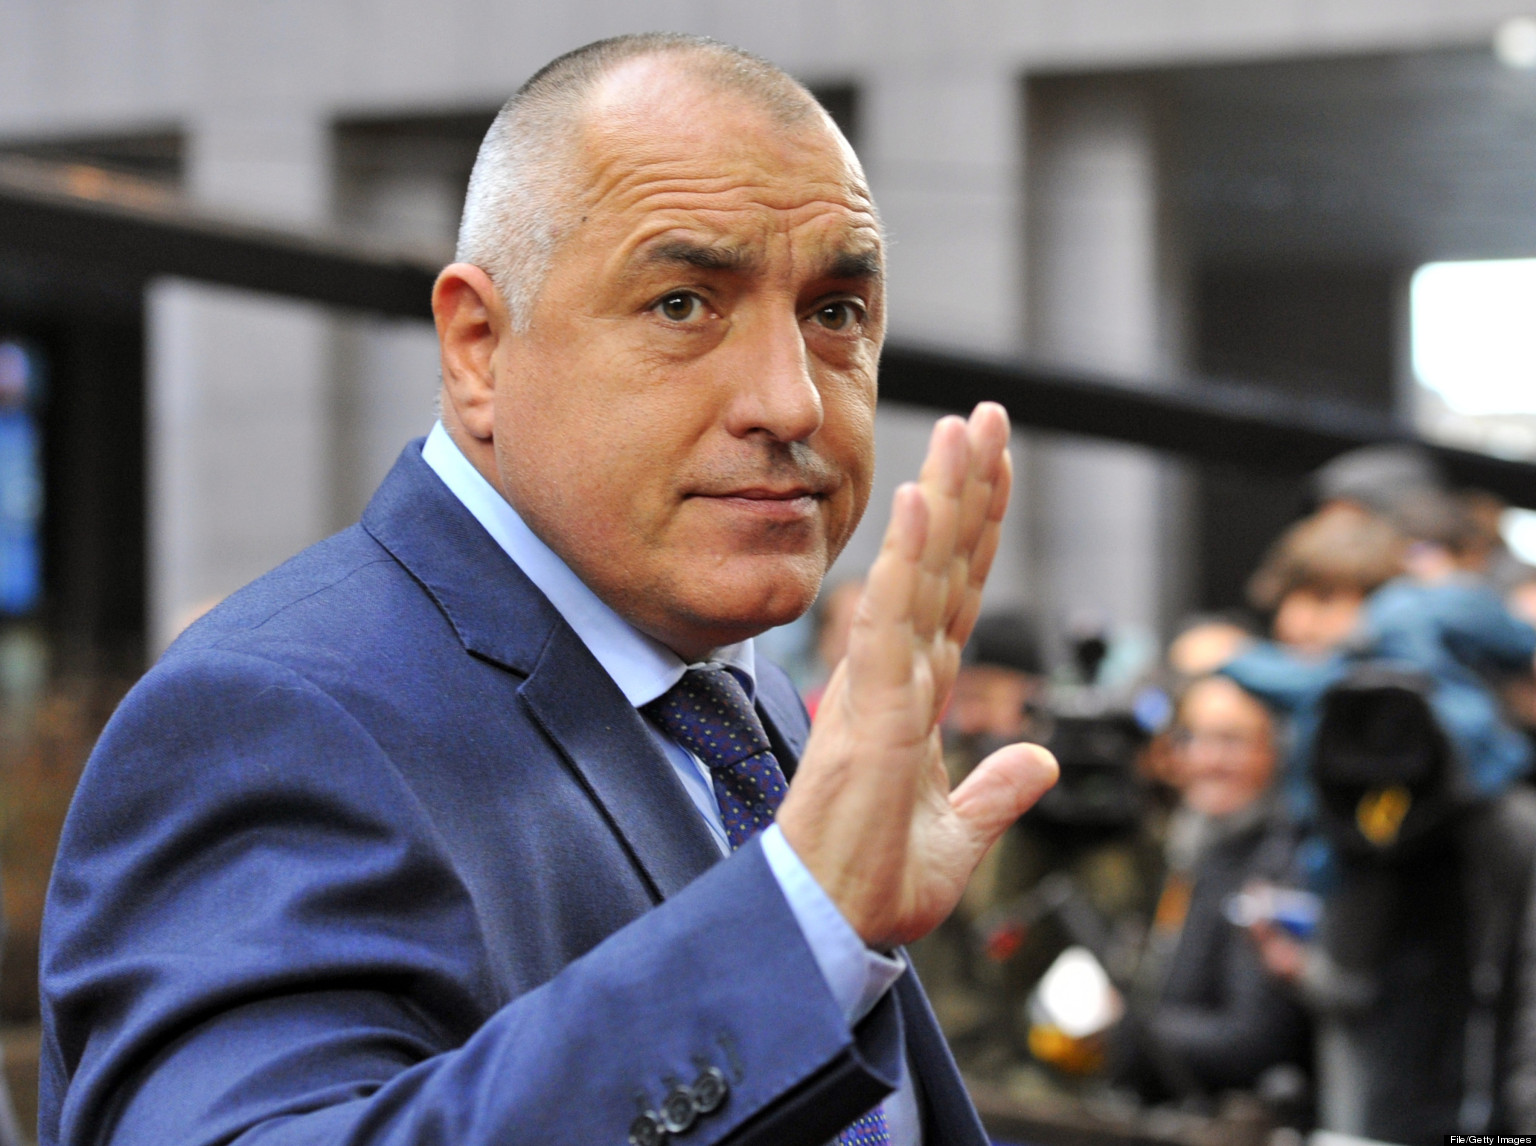 Bulgaria's former ruling proclaims victory in election, but heads for opposition